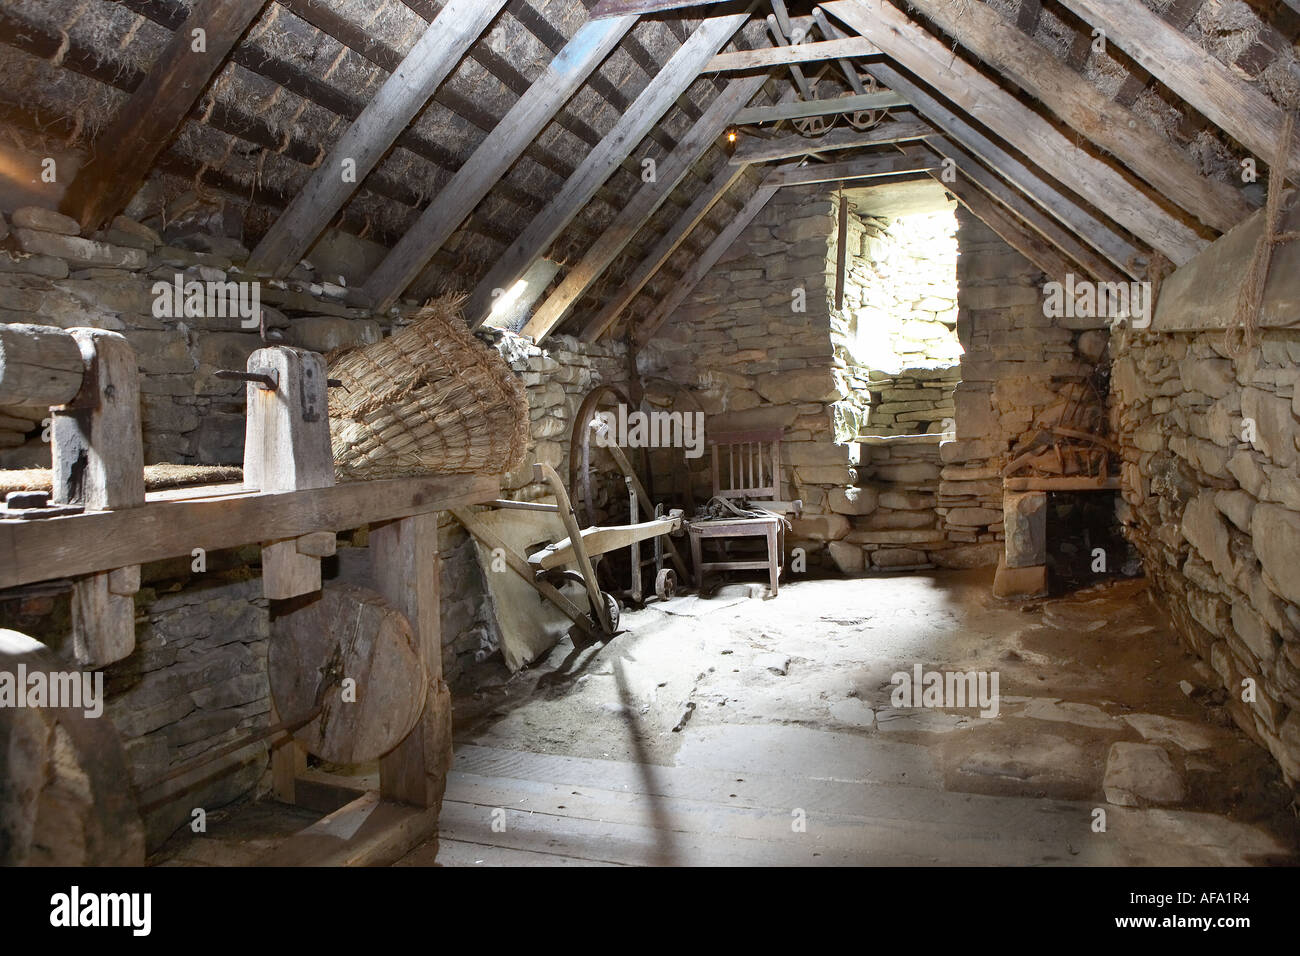 The Croft House Musuem A Small Traditional Farm With